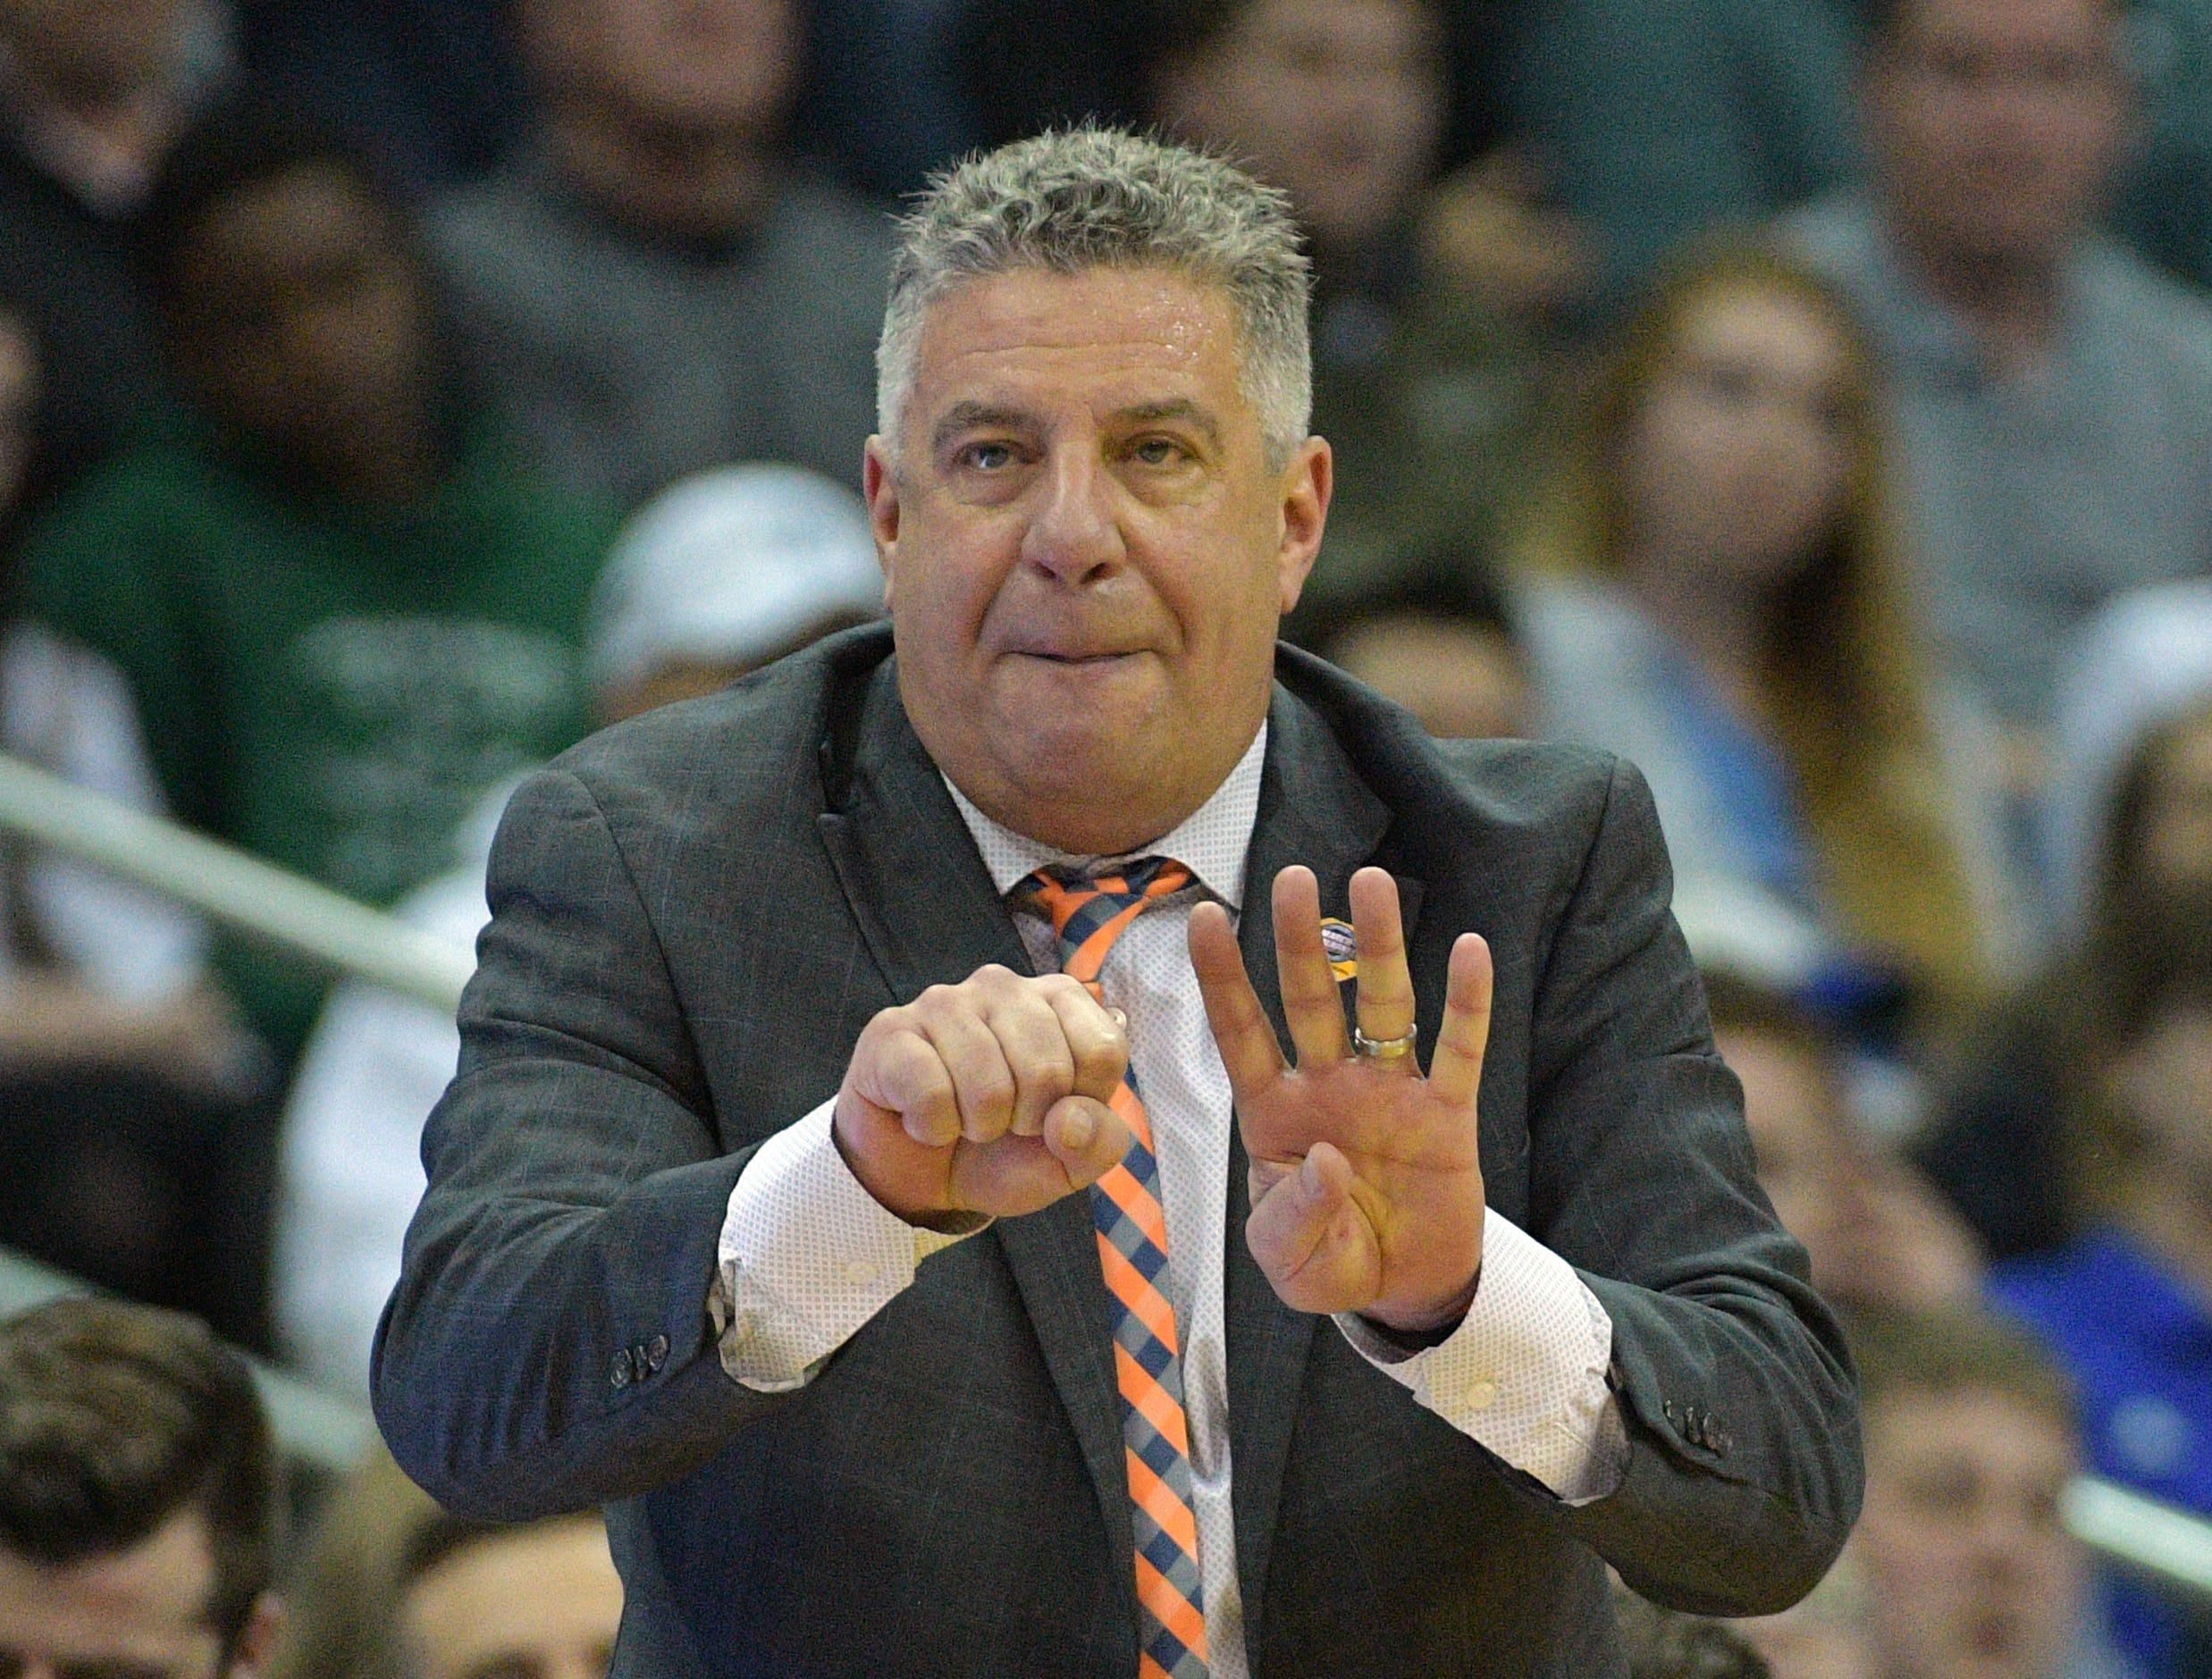 Mar 29, 2019; Kansas City, MO, United States; Auburn Tigers head coach Bruce Pearl gestures against the North Carolina Tar Heels during the first half in the semifinals of the midwest regional of the 2019 NCAA Tournament at Sprint Center. Mandatory Credit: Denny Medley-USA TODAY Sports